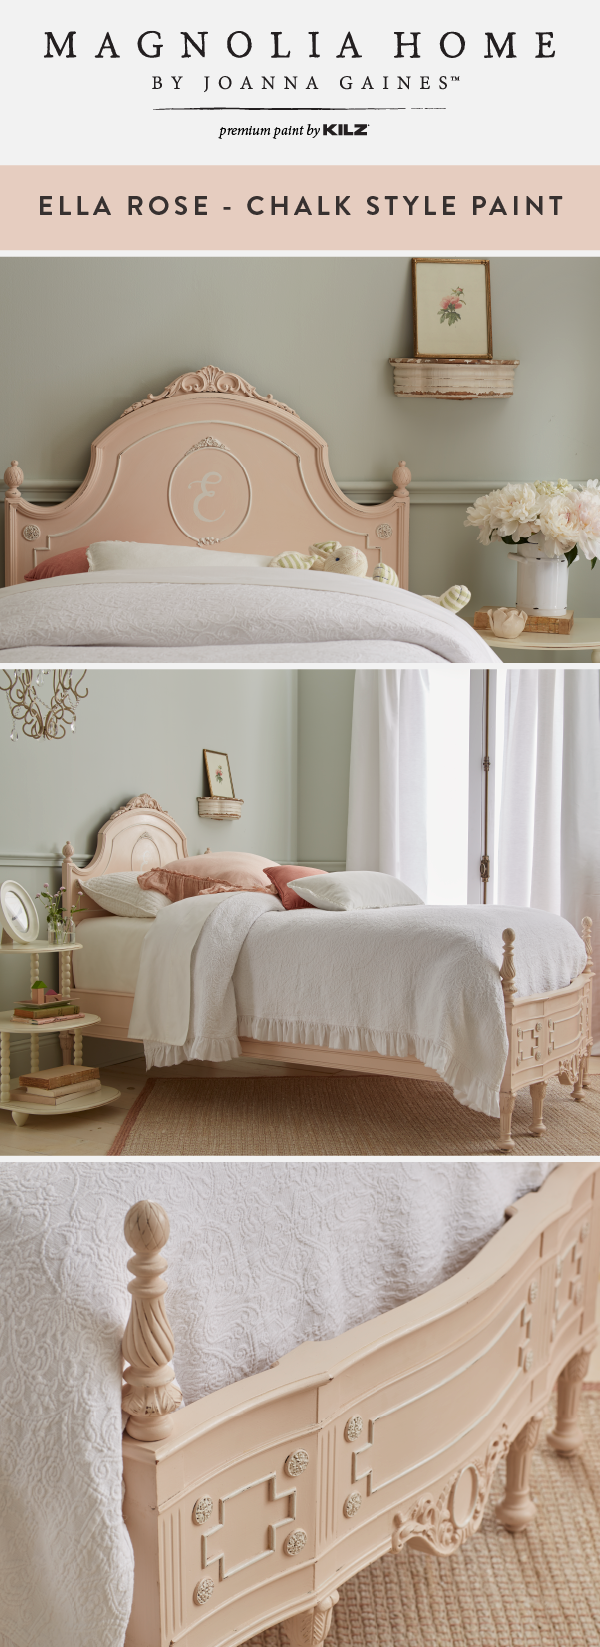 Ella Rose Chalk Style Paint Painted bed frames